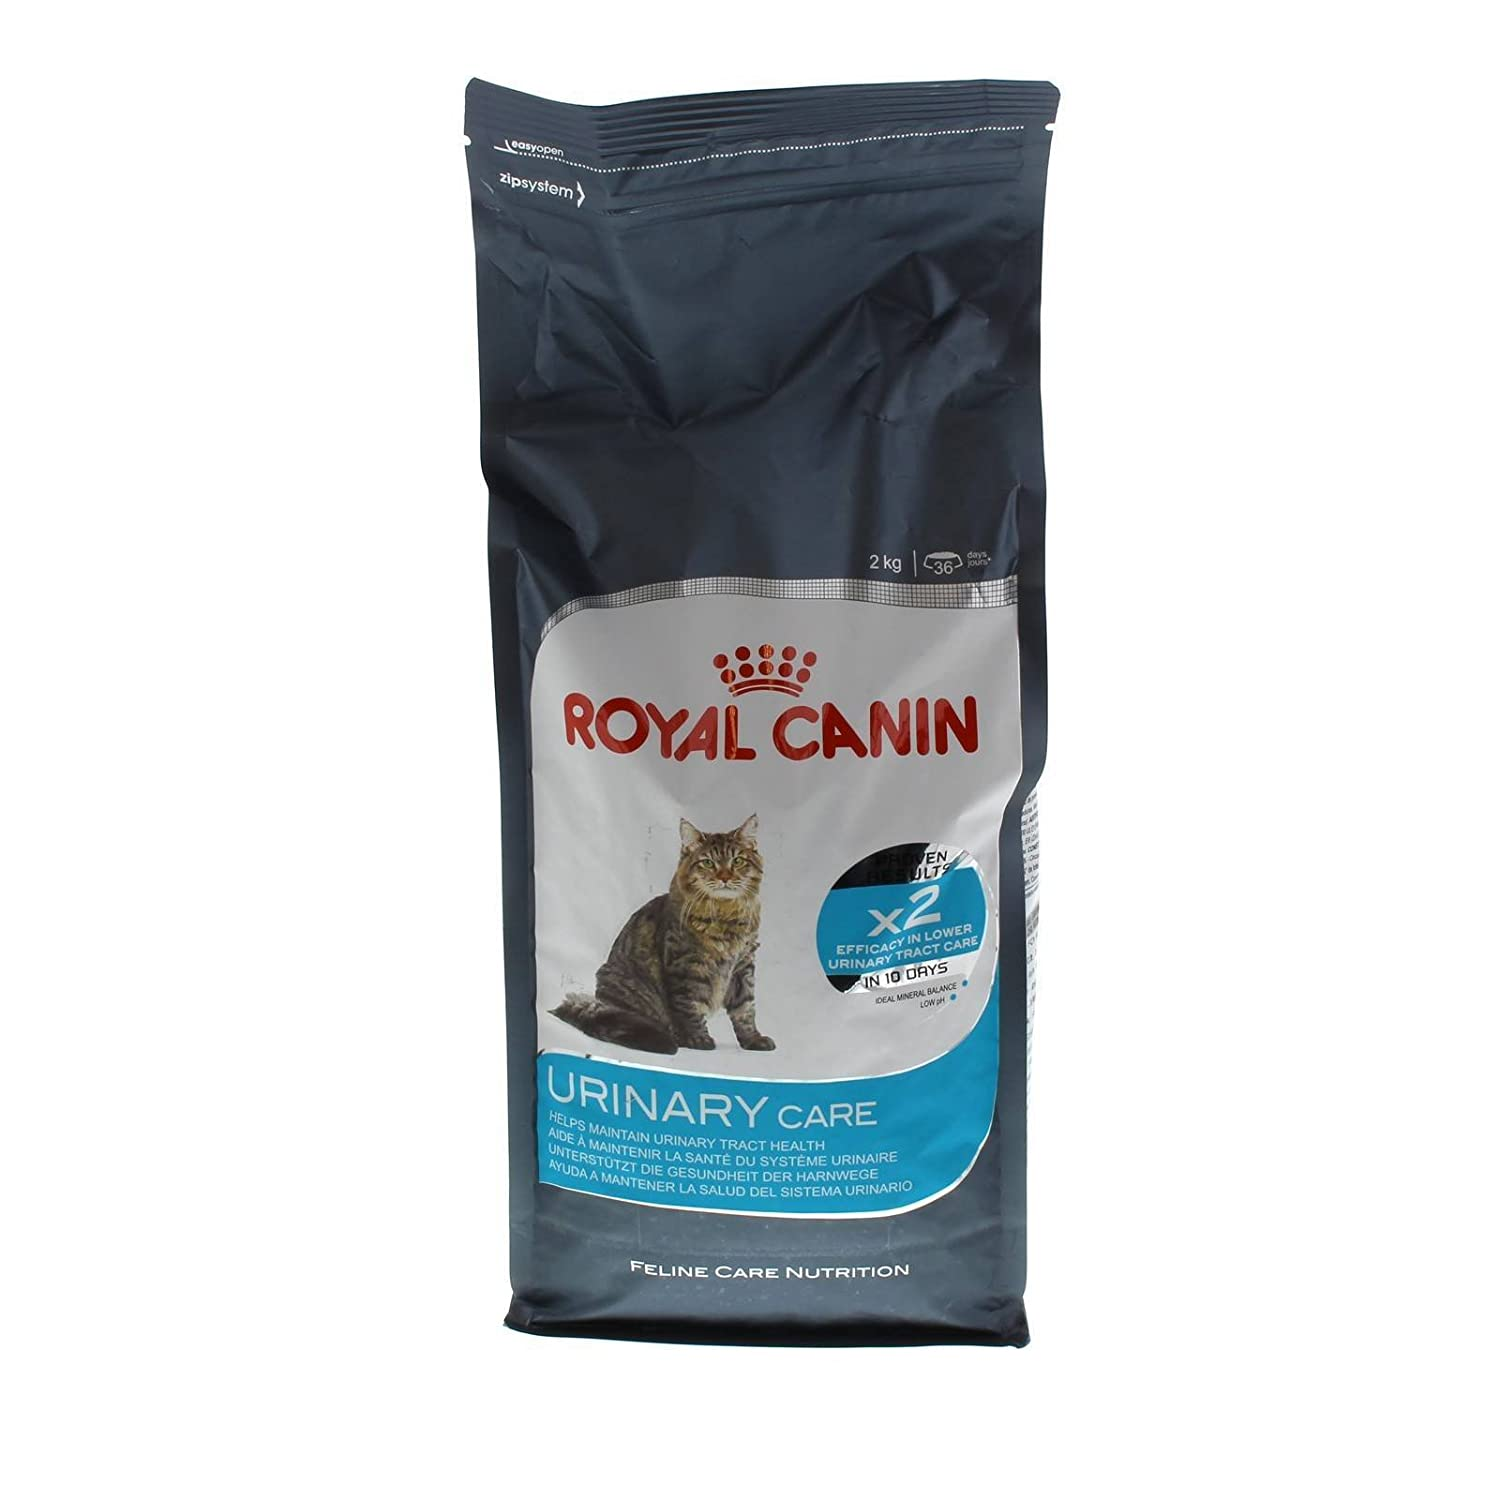 Royal Canin Comida para gatos Urinary Care 2 Kg: Amazon.es: Productos para mascotas